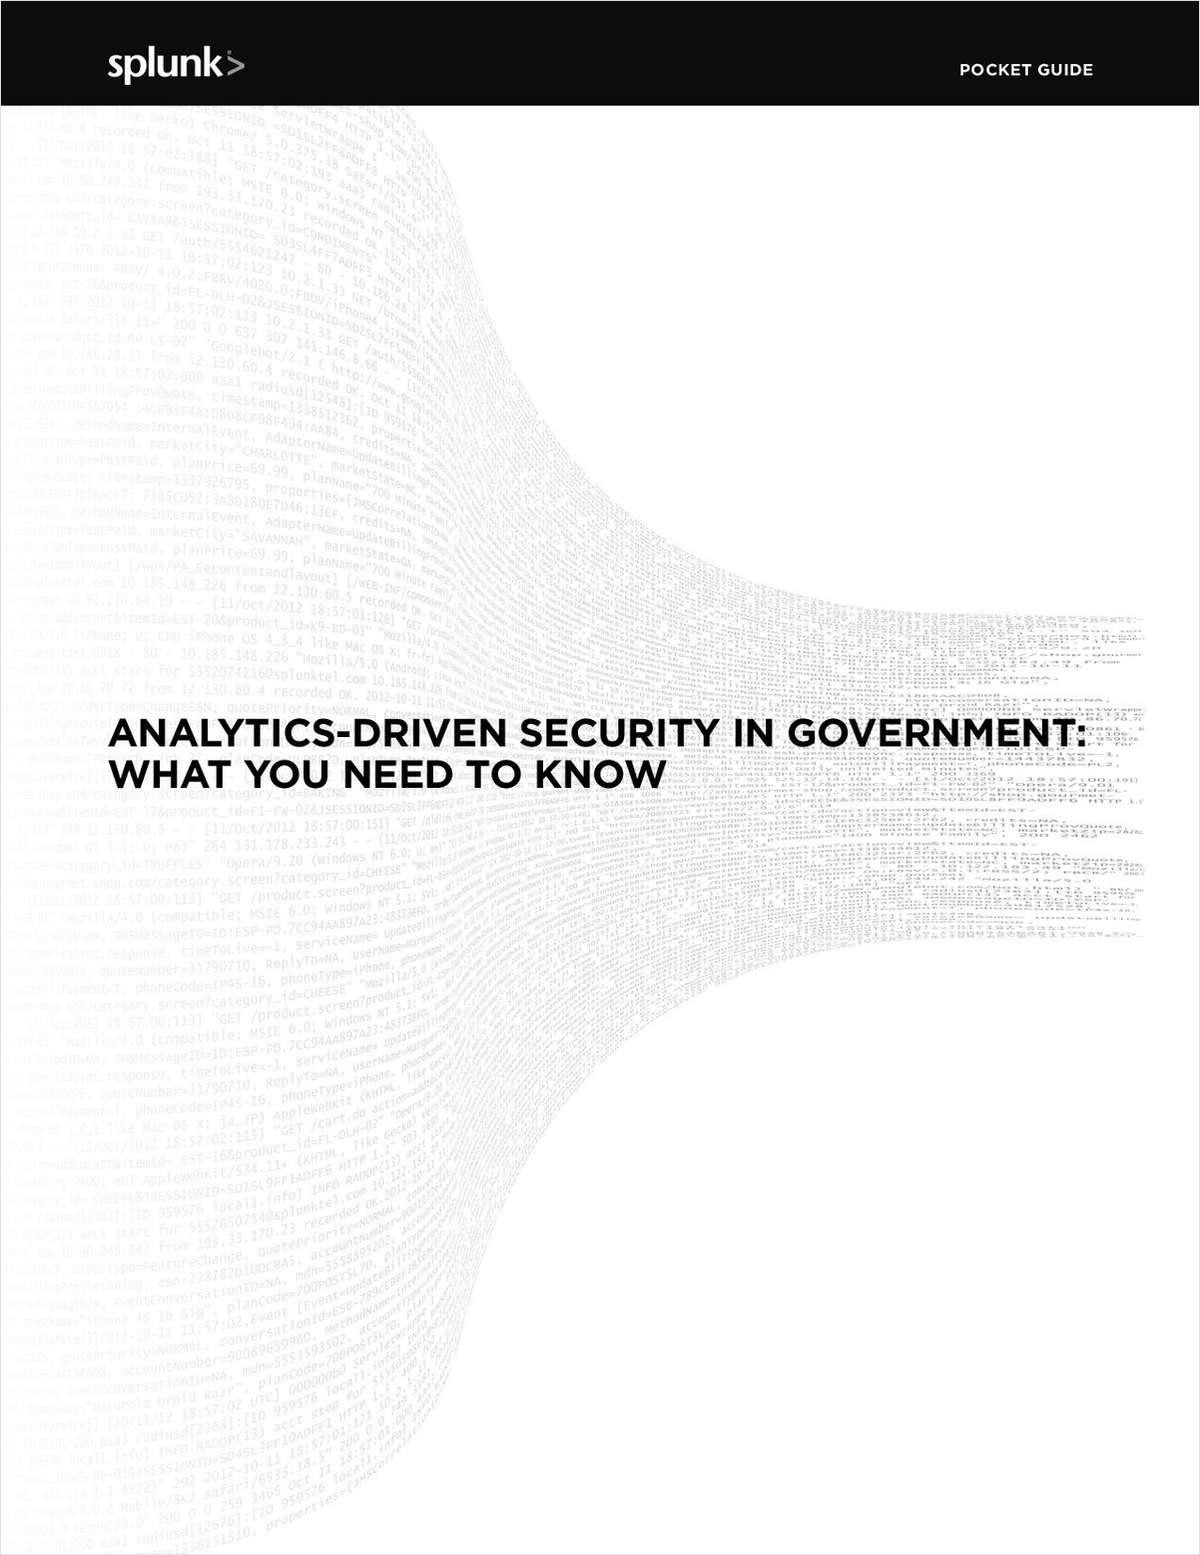 Analytics-Driven Security in Government, Free Splunk eBook